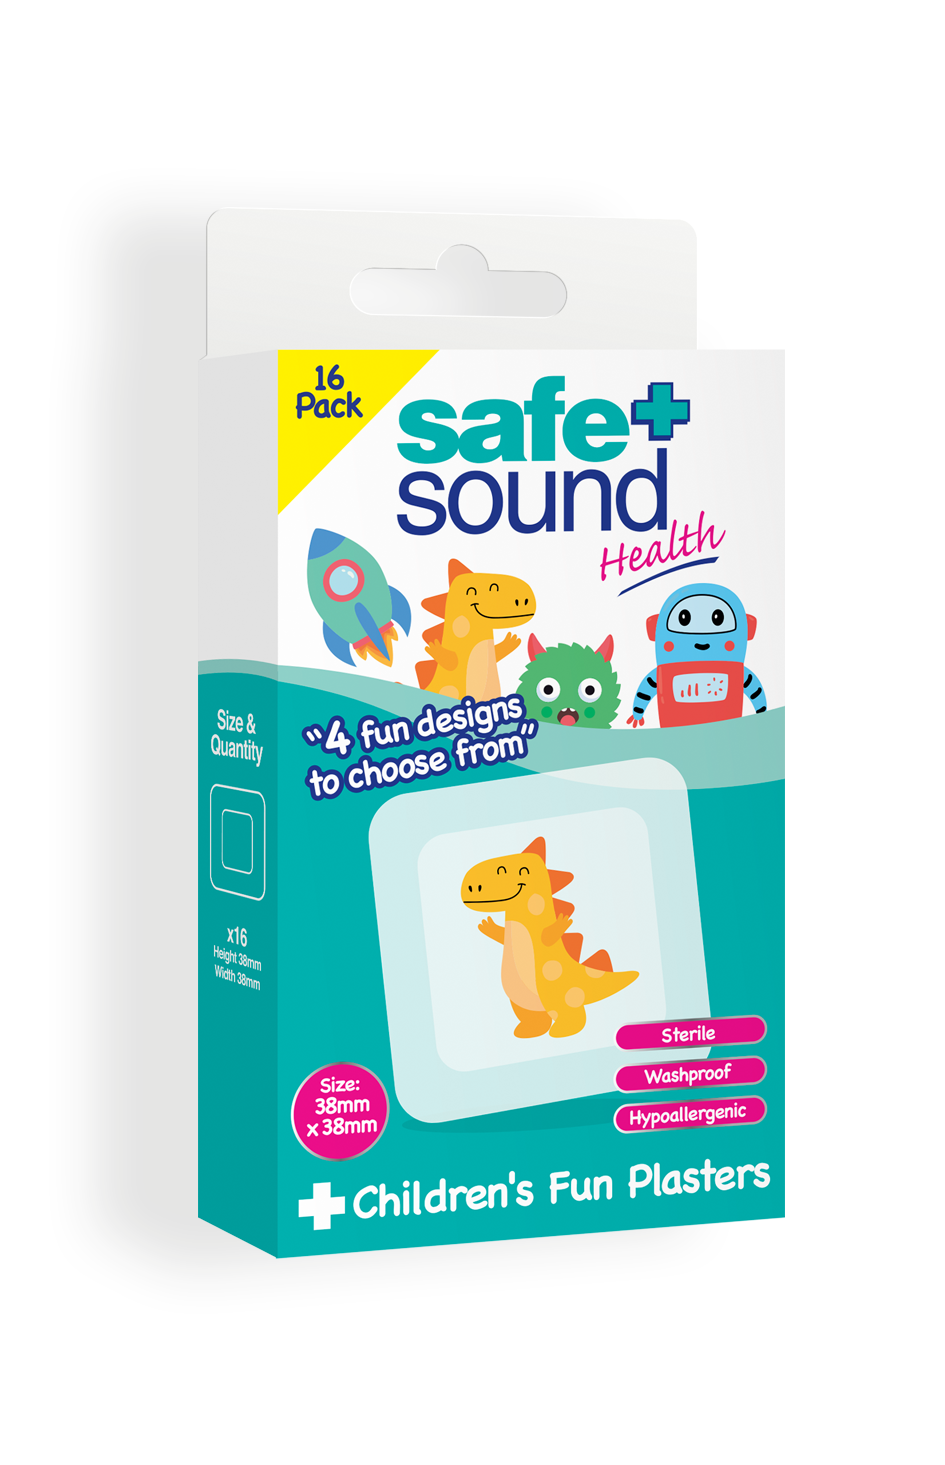 Safe and Sound Health Kid Fun Plasters – Dinosaur, Monster, Robot & Spaceship Design